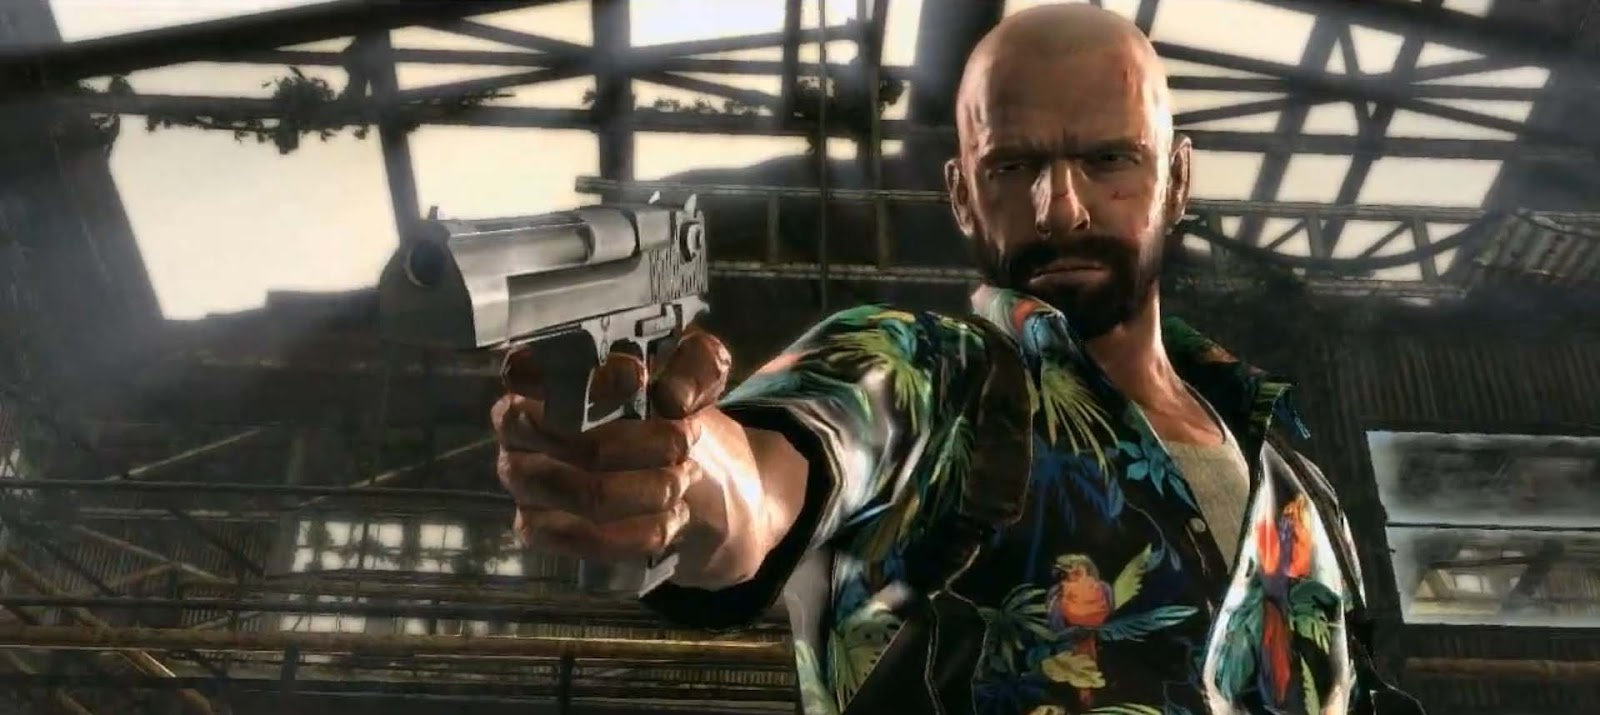 Max-Payne-3-Screenshots-Gameplay-2